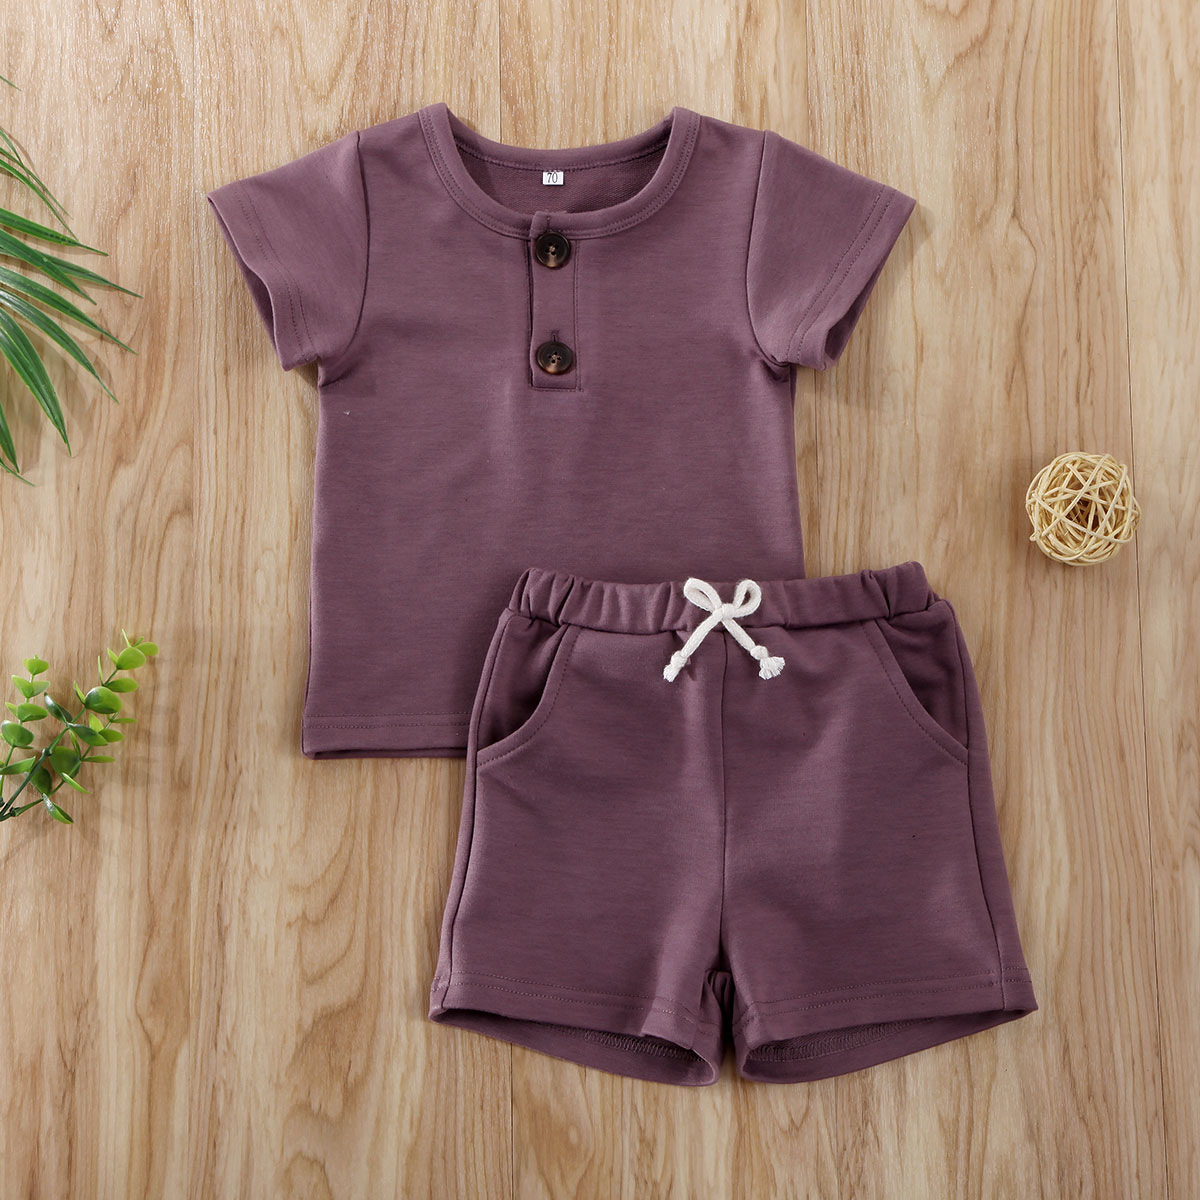 Pudcoco Toddler Baby Boy Clothes Solid Color Short Sleeve T-Shirt Tops Short Pants 2Pcs Outfits Cotton Casual Clothes